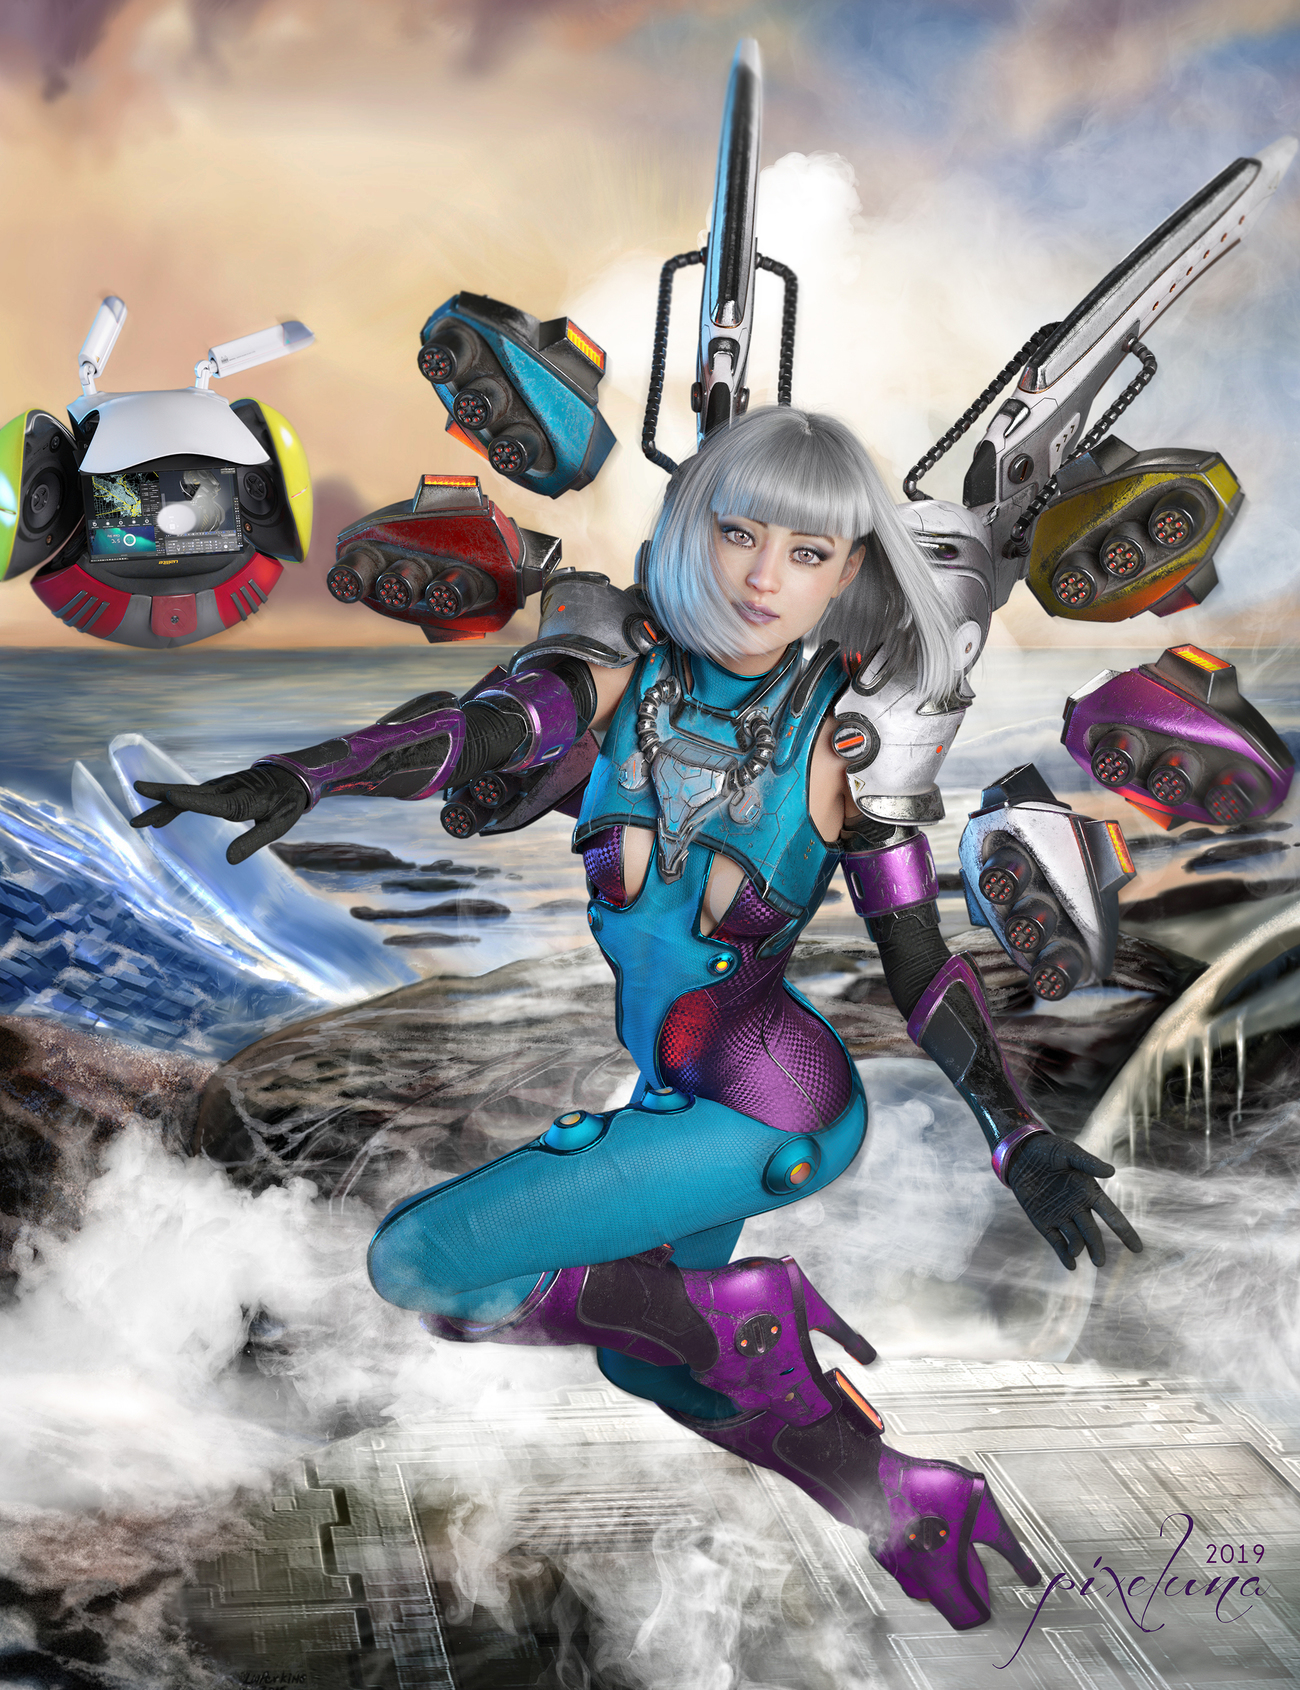 Happy Thanksgiving from the Ice Planet Zenon by pixeluna